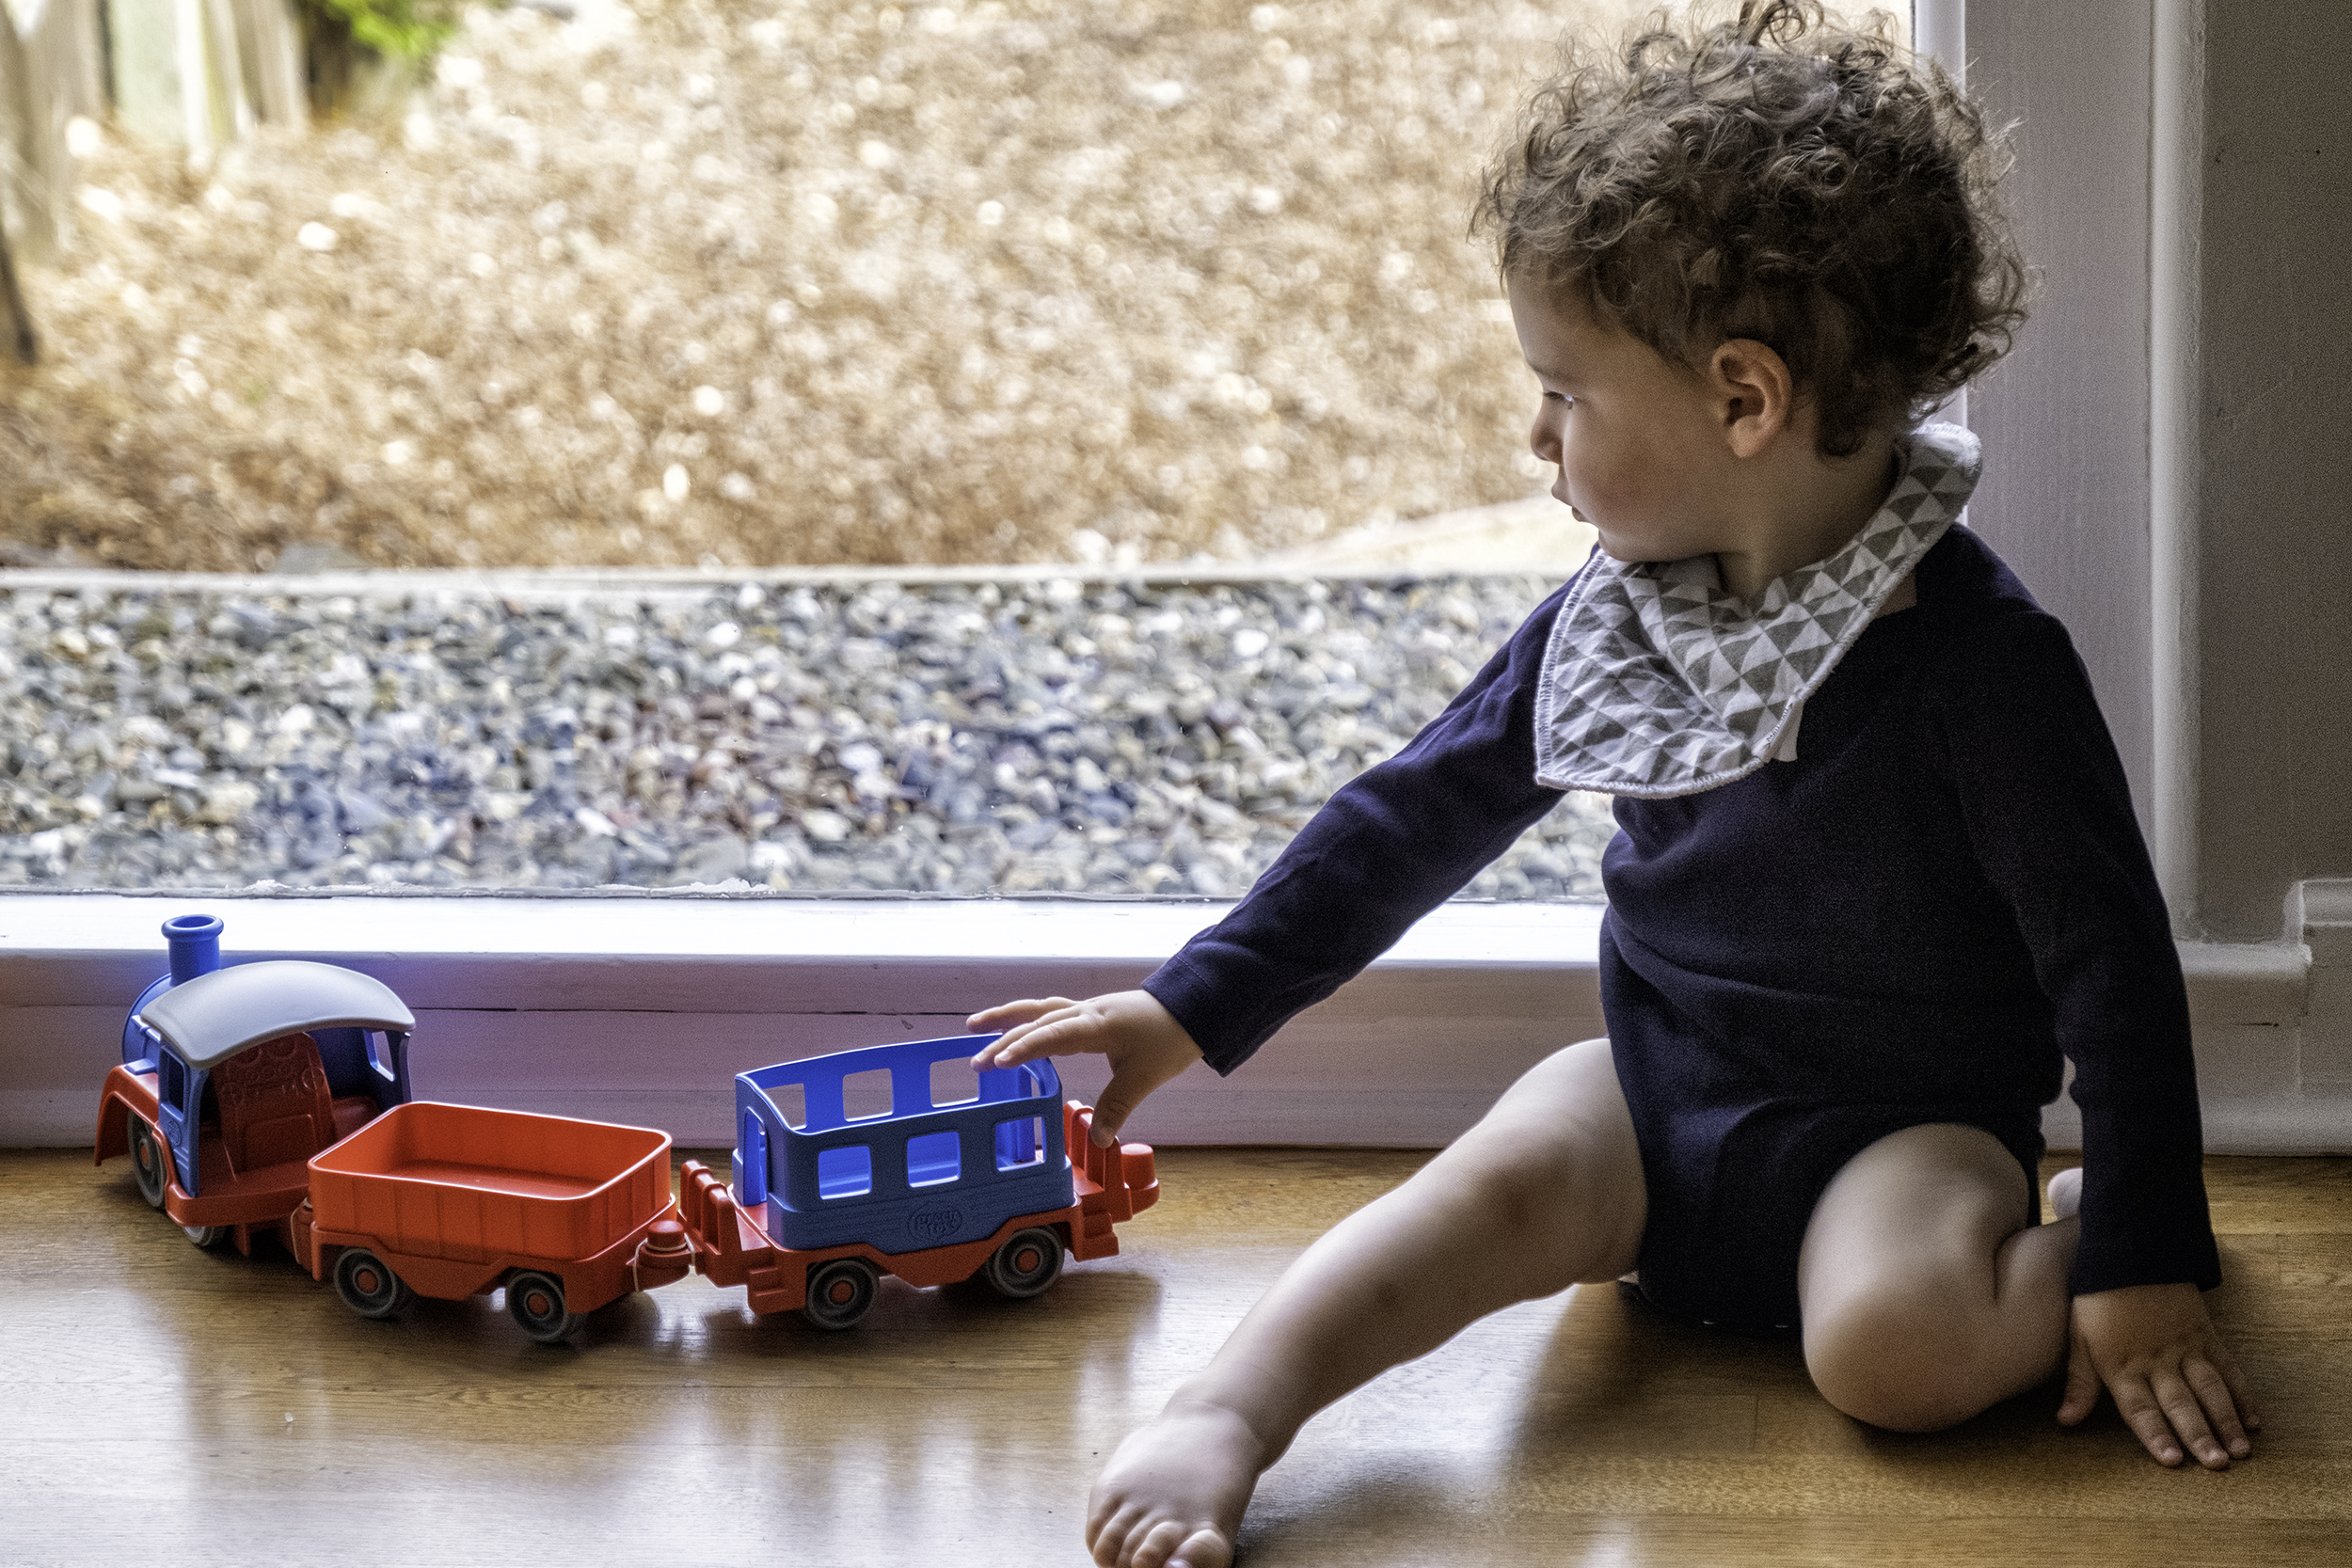 Eli with his new train